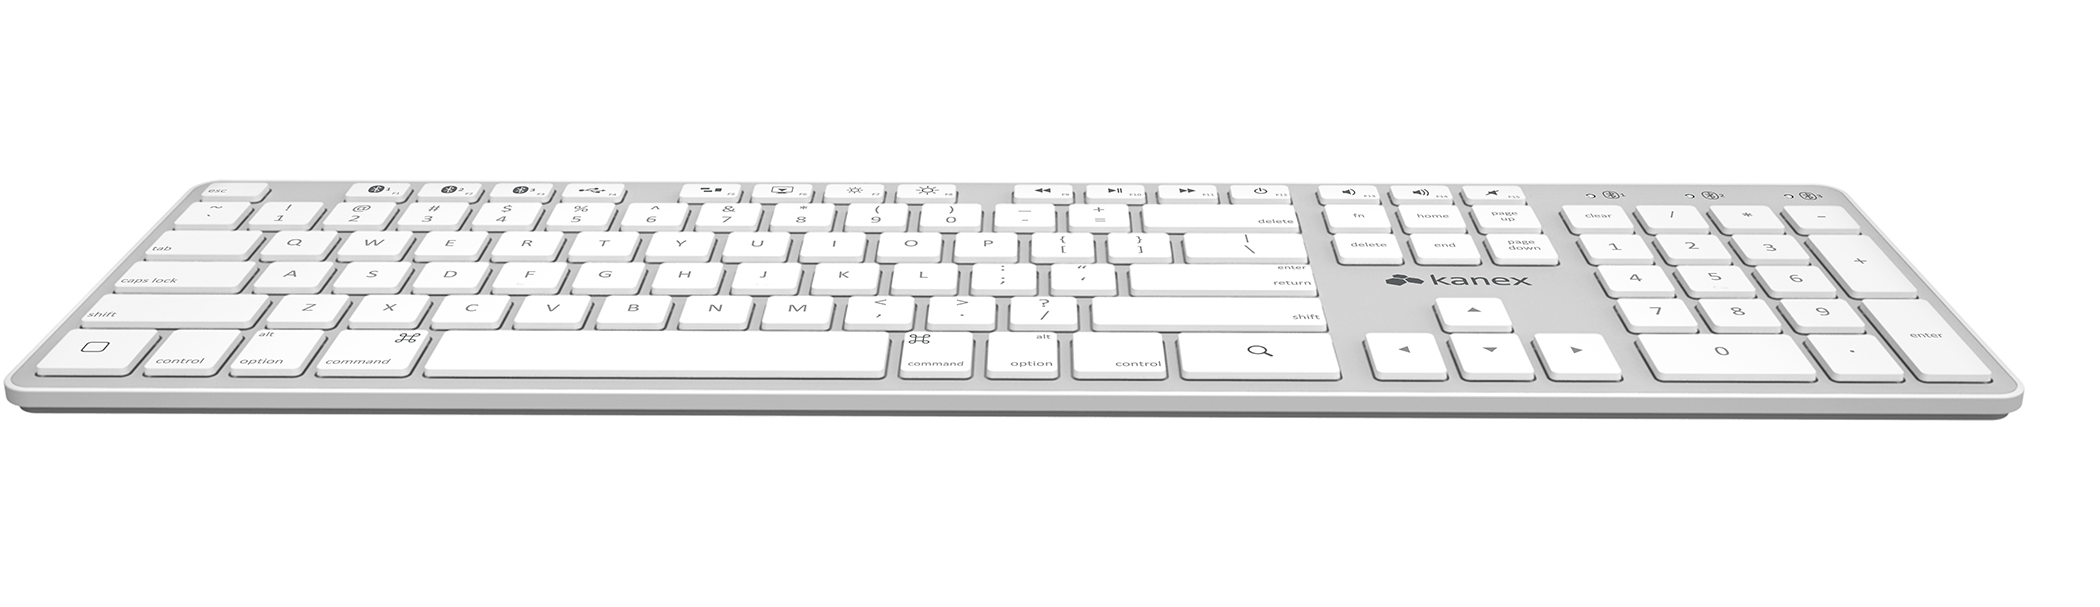 kanex multisync keyboard review one keyboard four macs